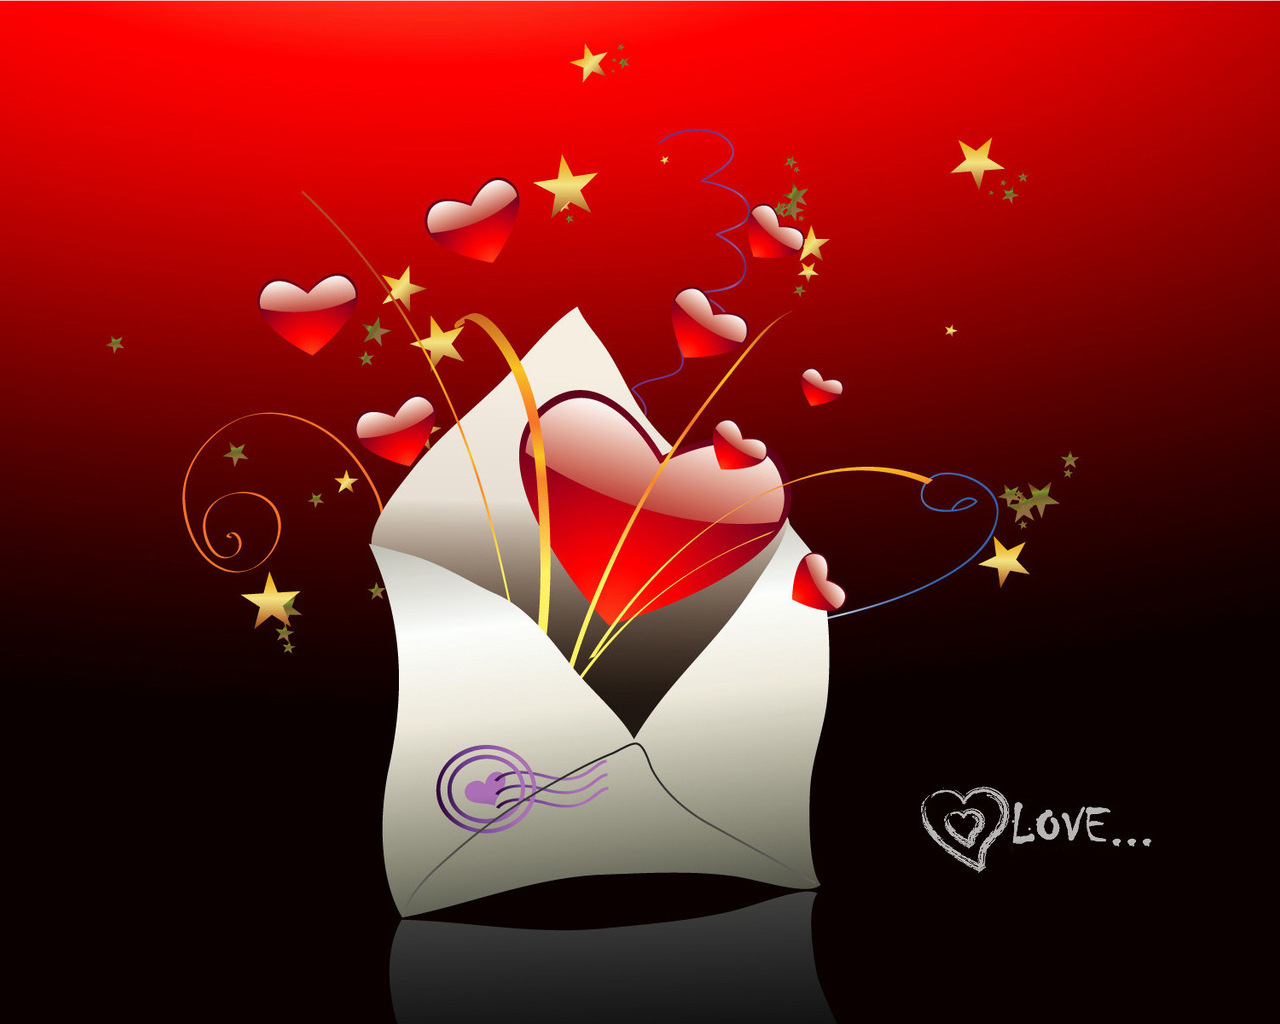 L Love You Hd Wallpaper : ??????, ?????????, ??????????, ???????...: ???????? ????????